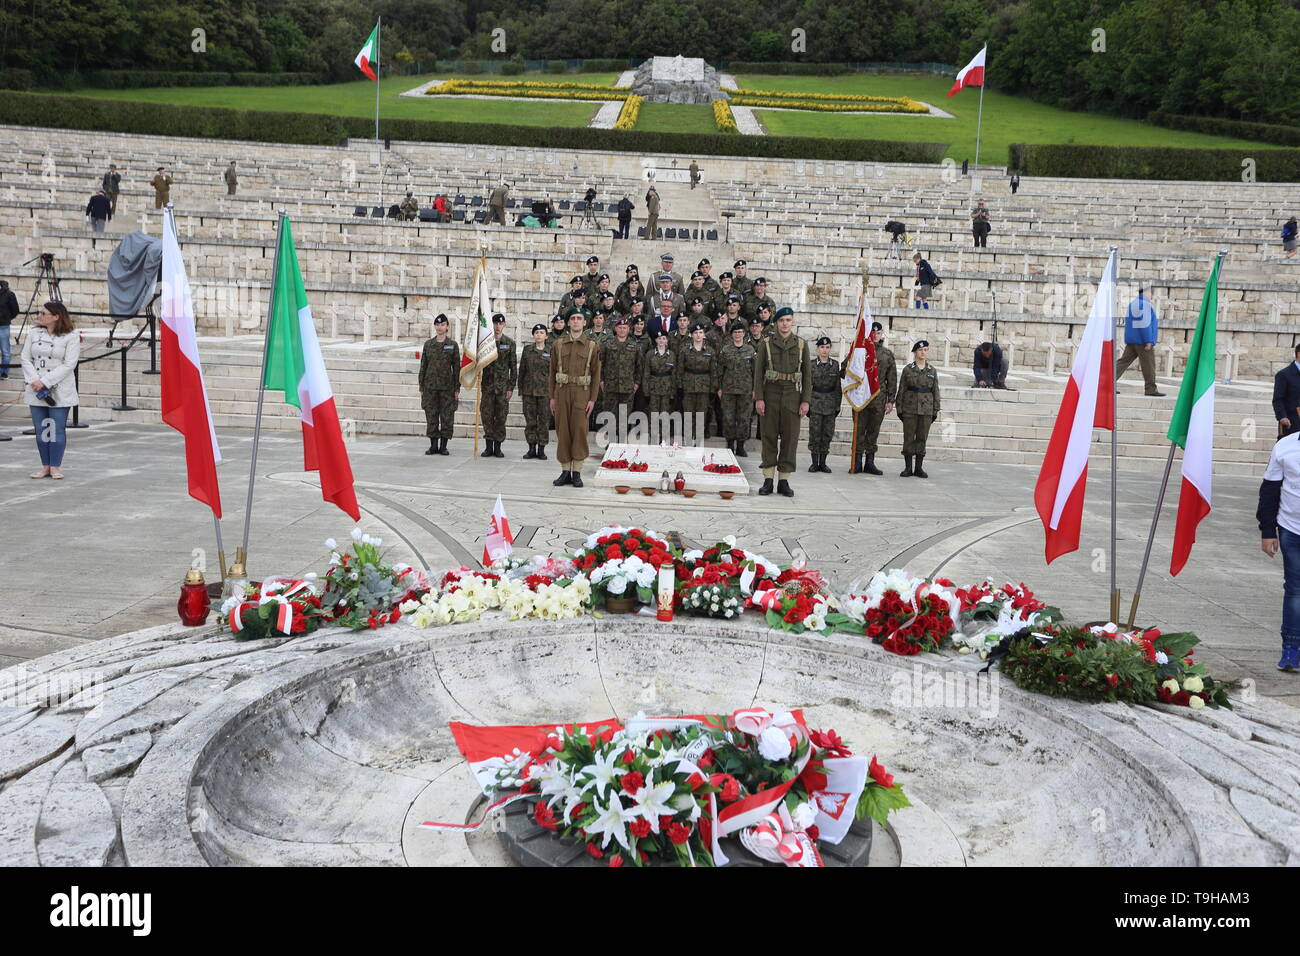 Cassino, Italy - May 18, 2019: Celebrations of the 75th anniversary of the Battle of Montecassino in the Polish military cemetery - Stock Image